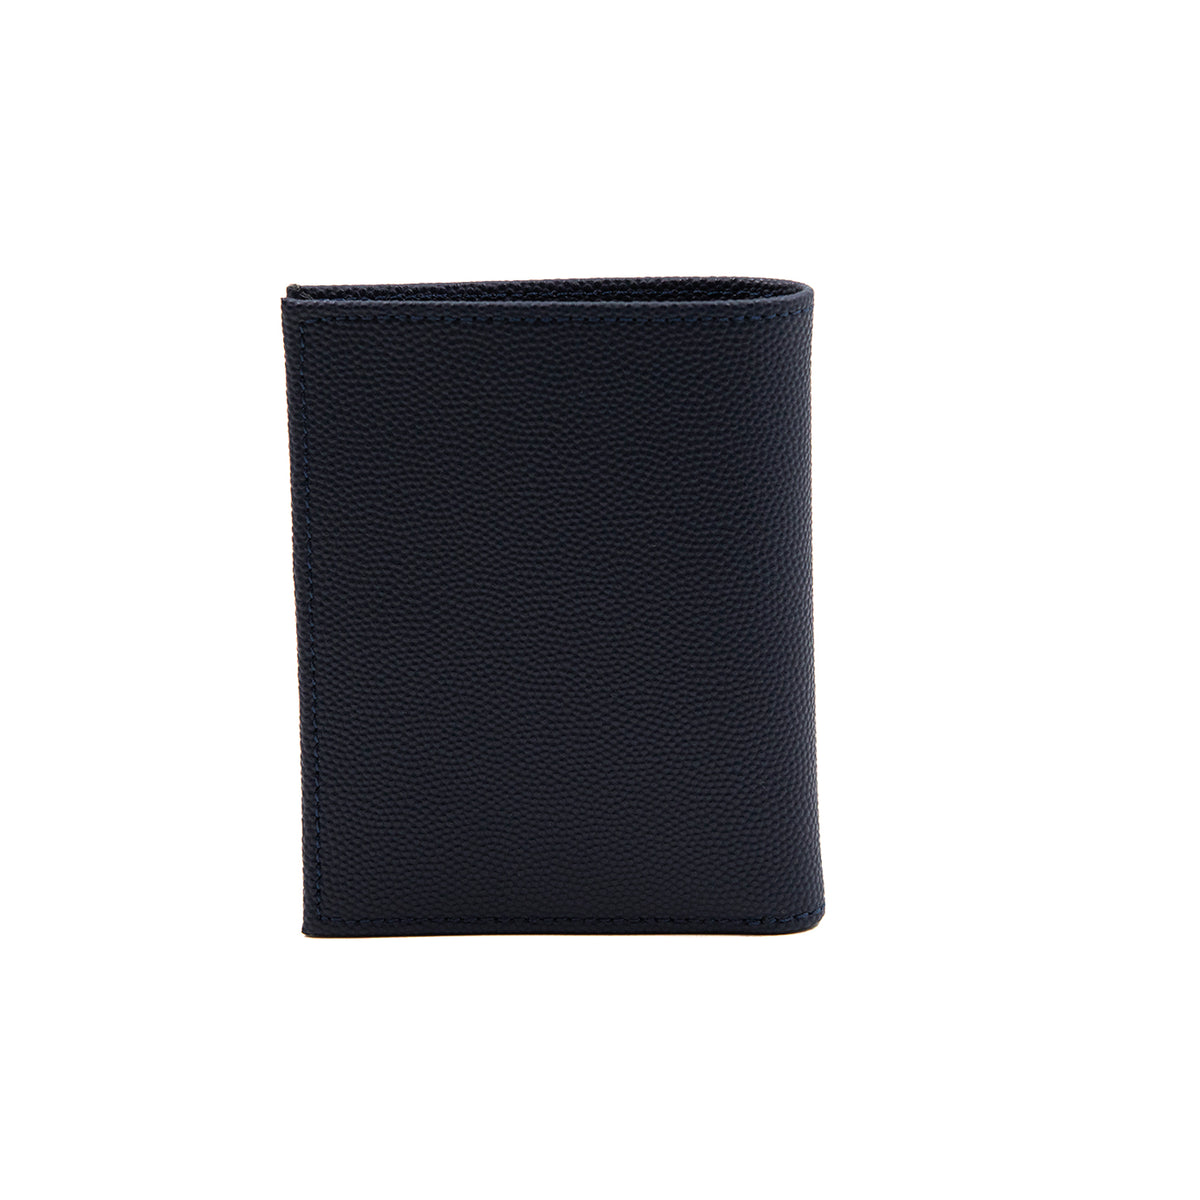 MINERVA EMBOSSED LEATHER NAVY F BY FARADA WALLET (MWITF111)